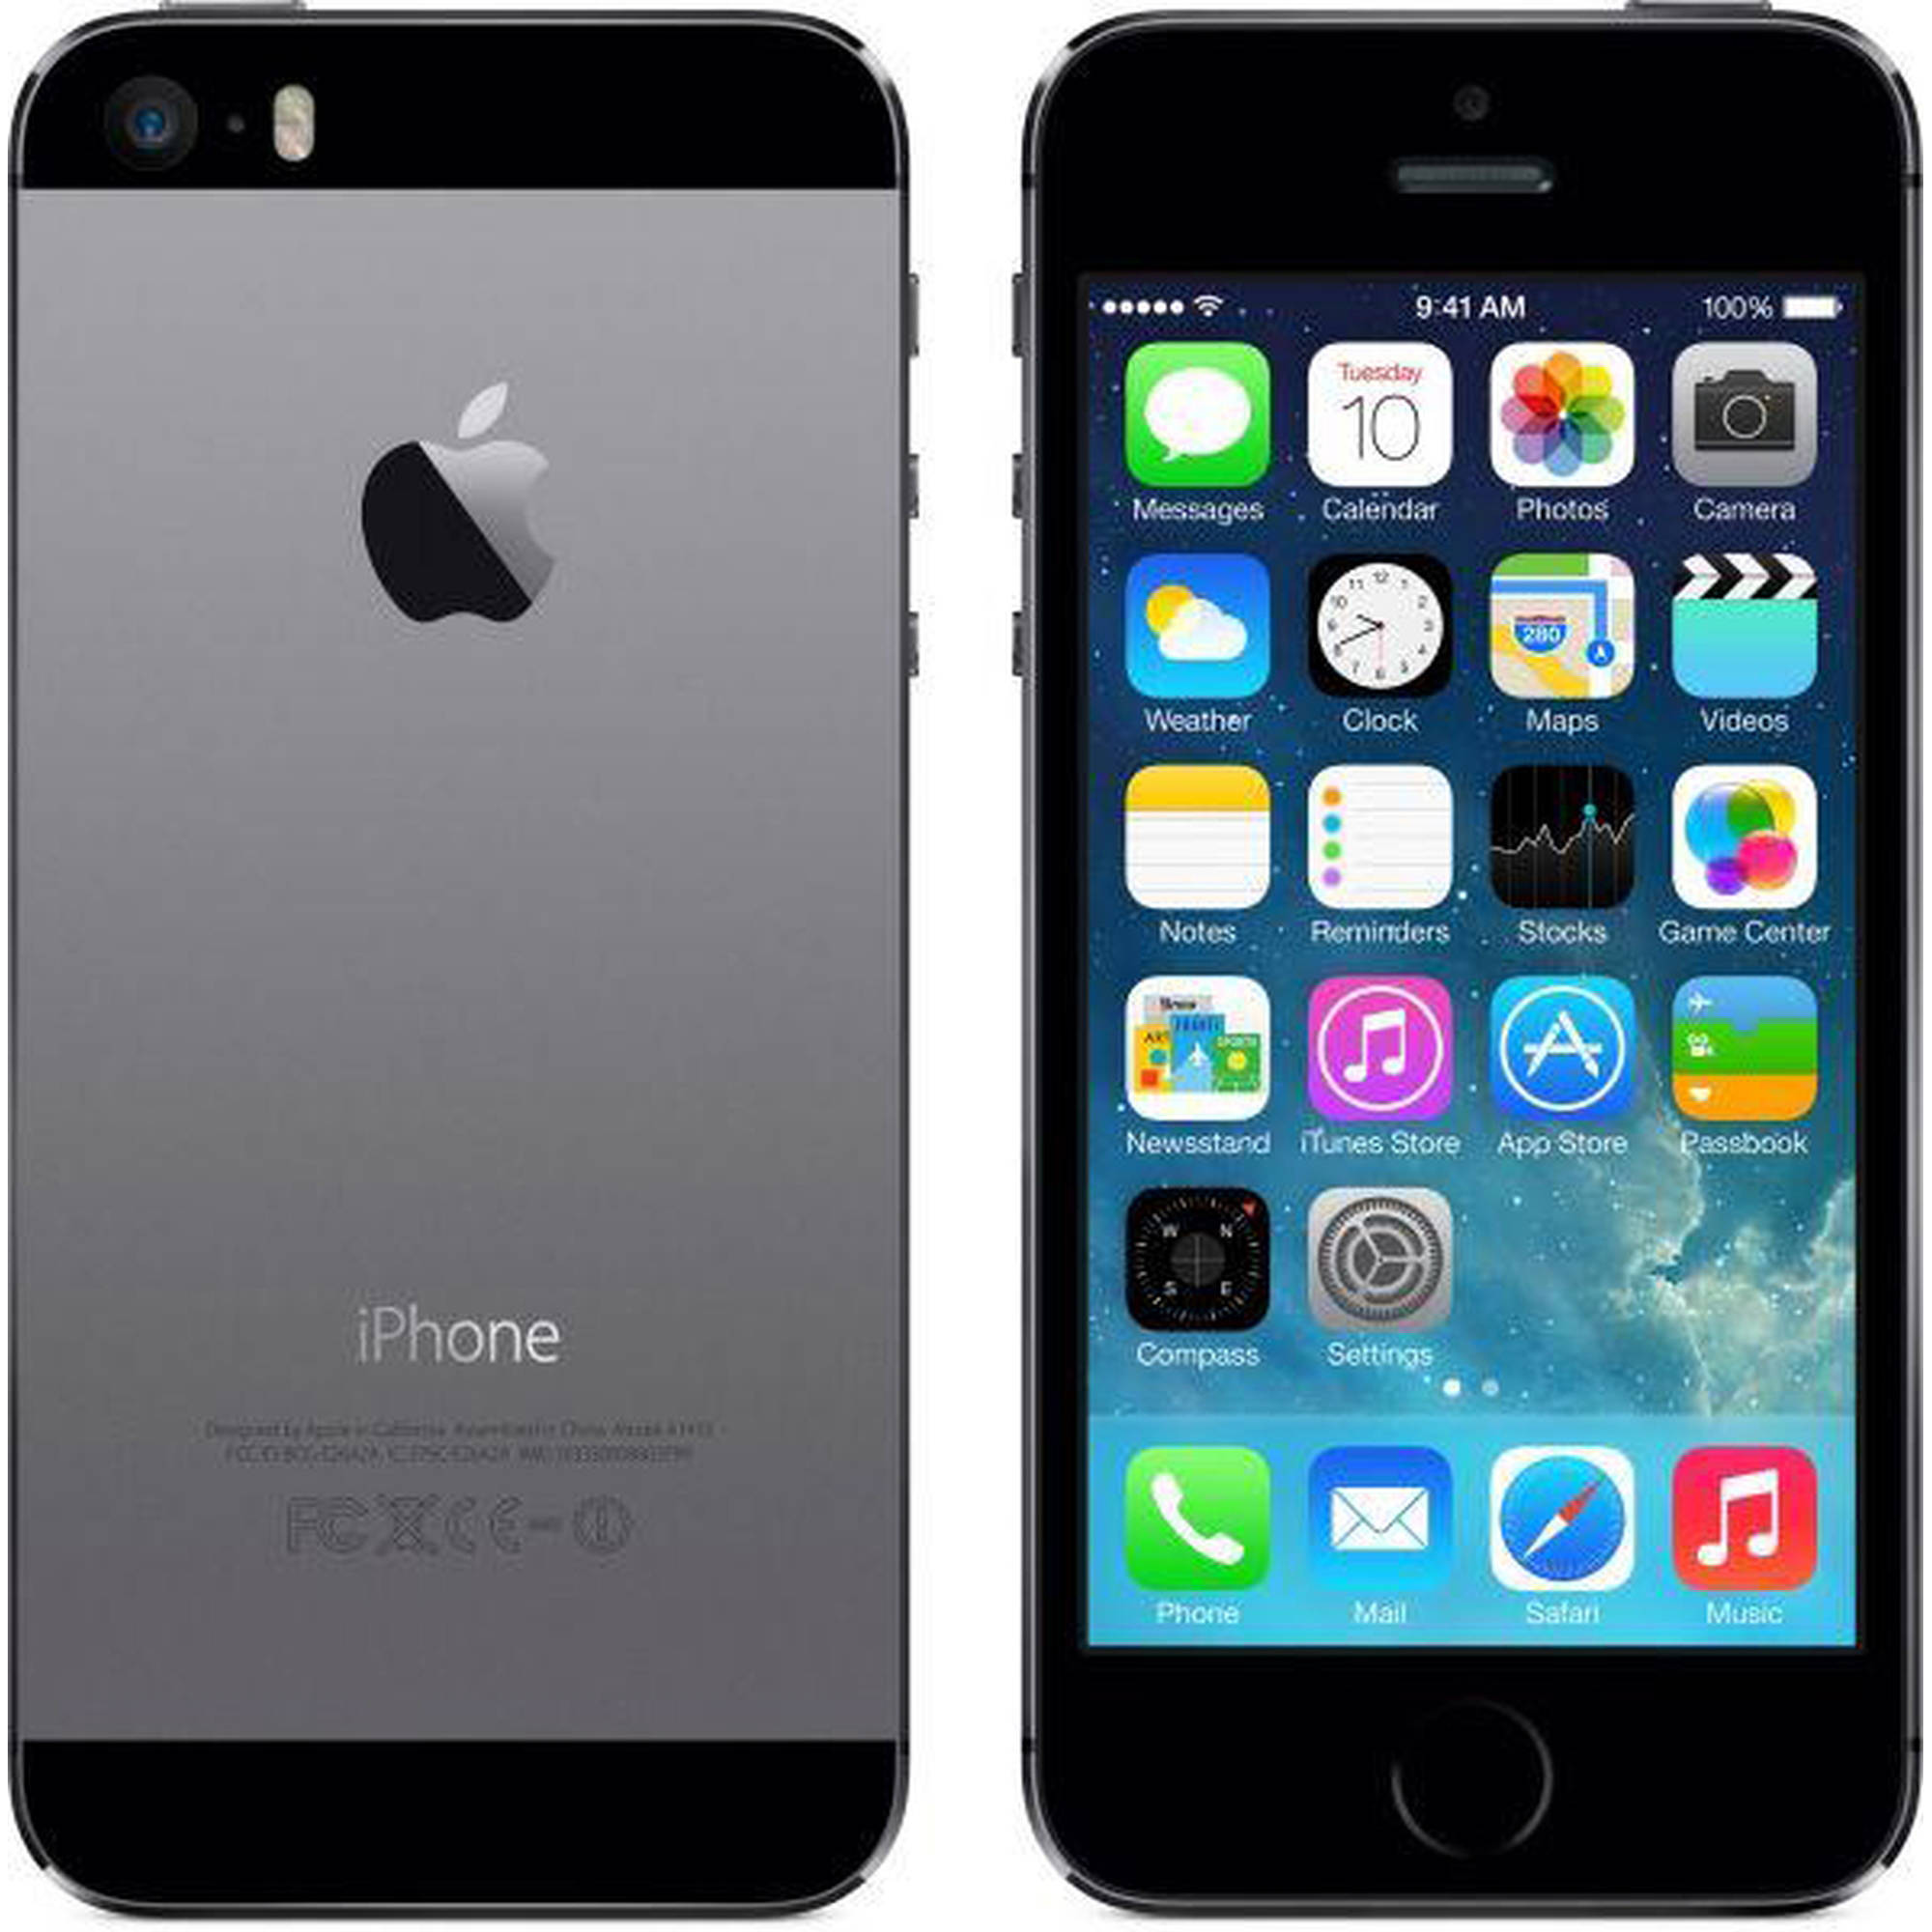 Iphone 5s 16gb brand new unlocked genuine apple iphone best price in - Refurbished Apple Iphone 5s 16gb Gsm Smartphone Unlocked Walmart Com